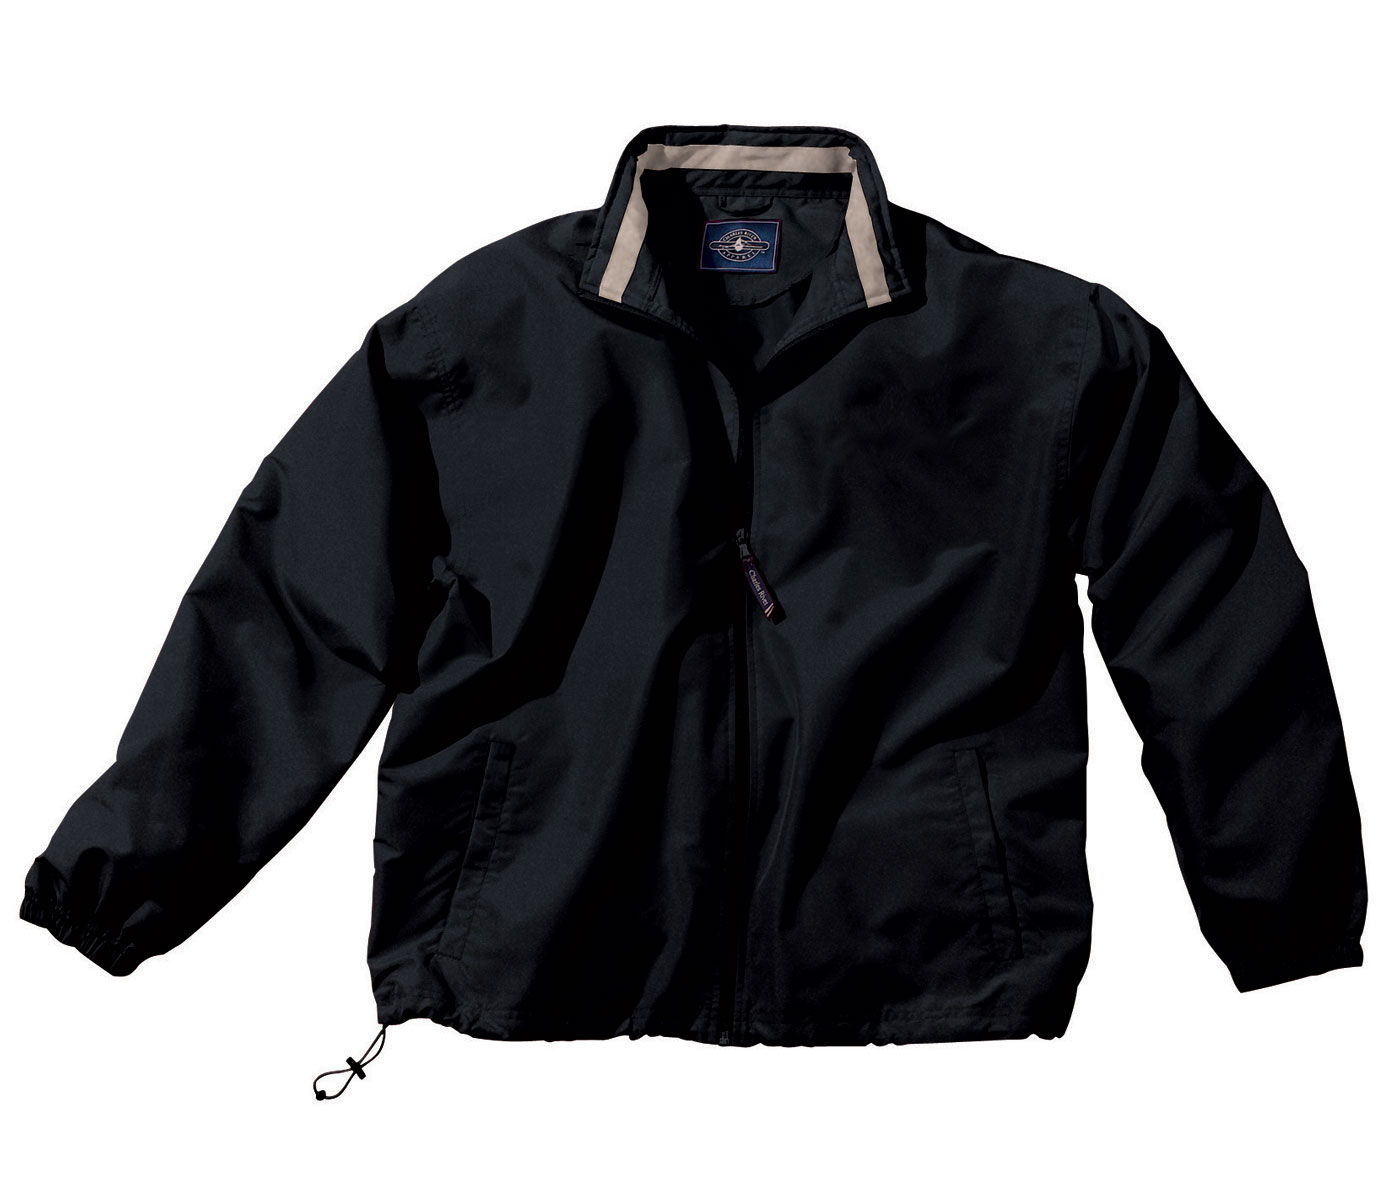 The Nantucket Jacket by Charles River Apparel